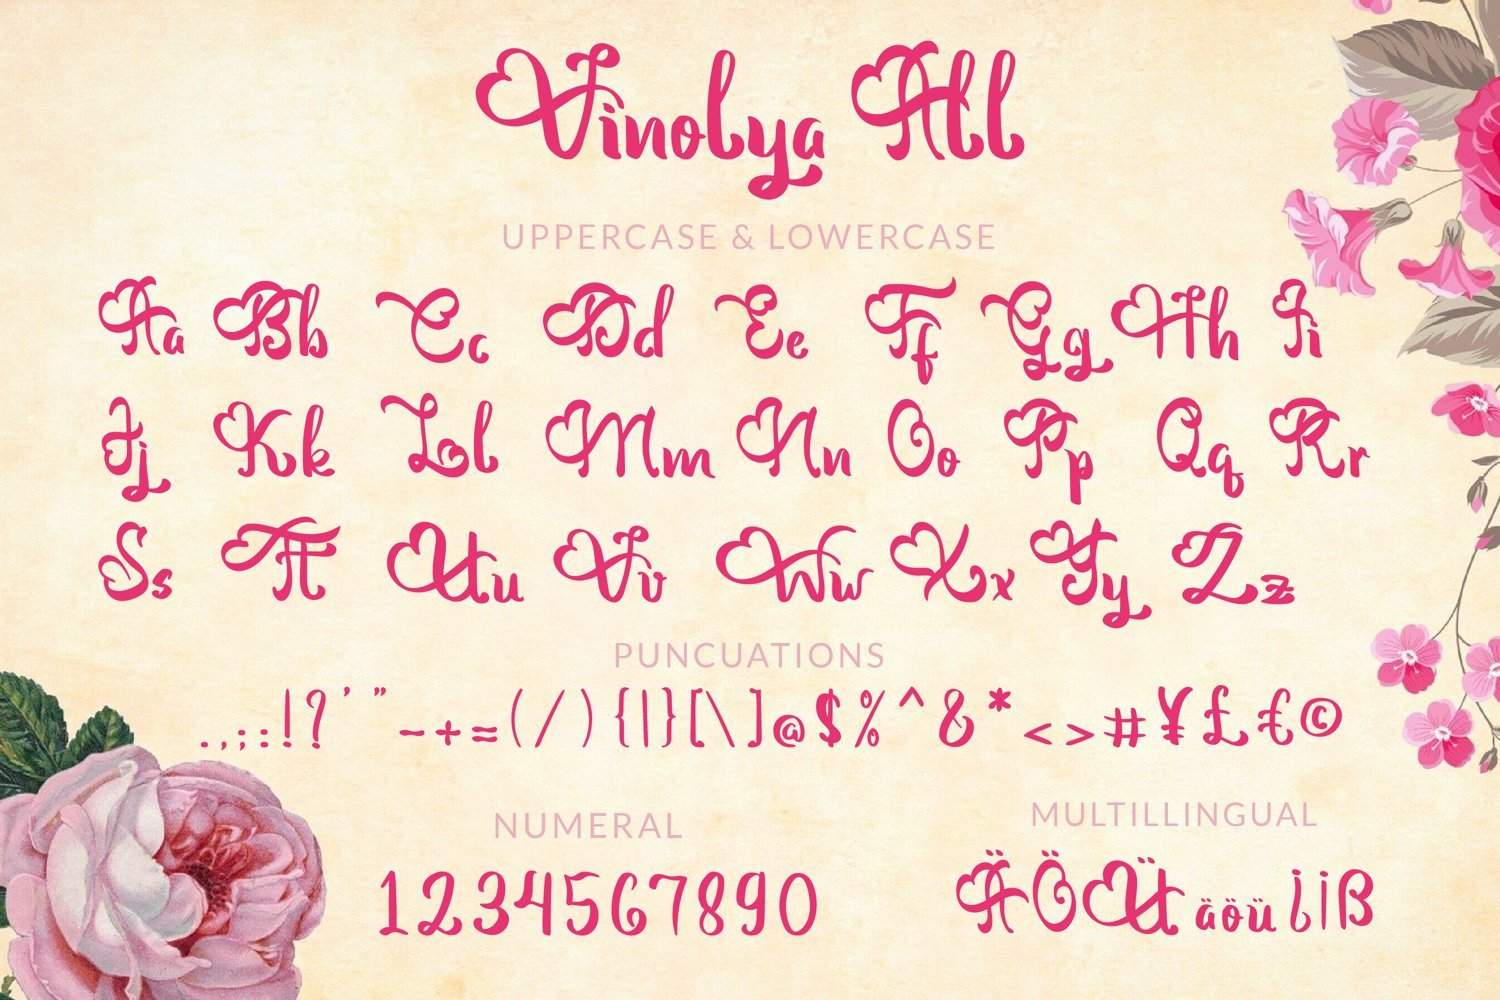 Here is the display of the font in all guises.